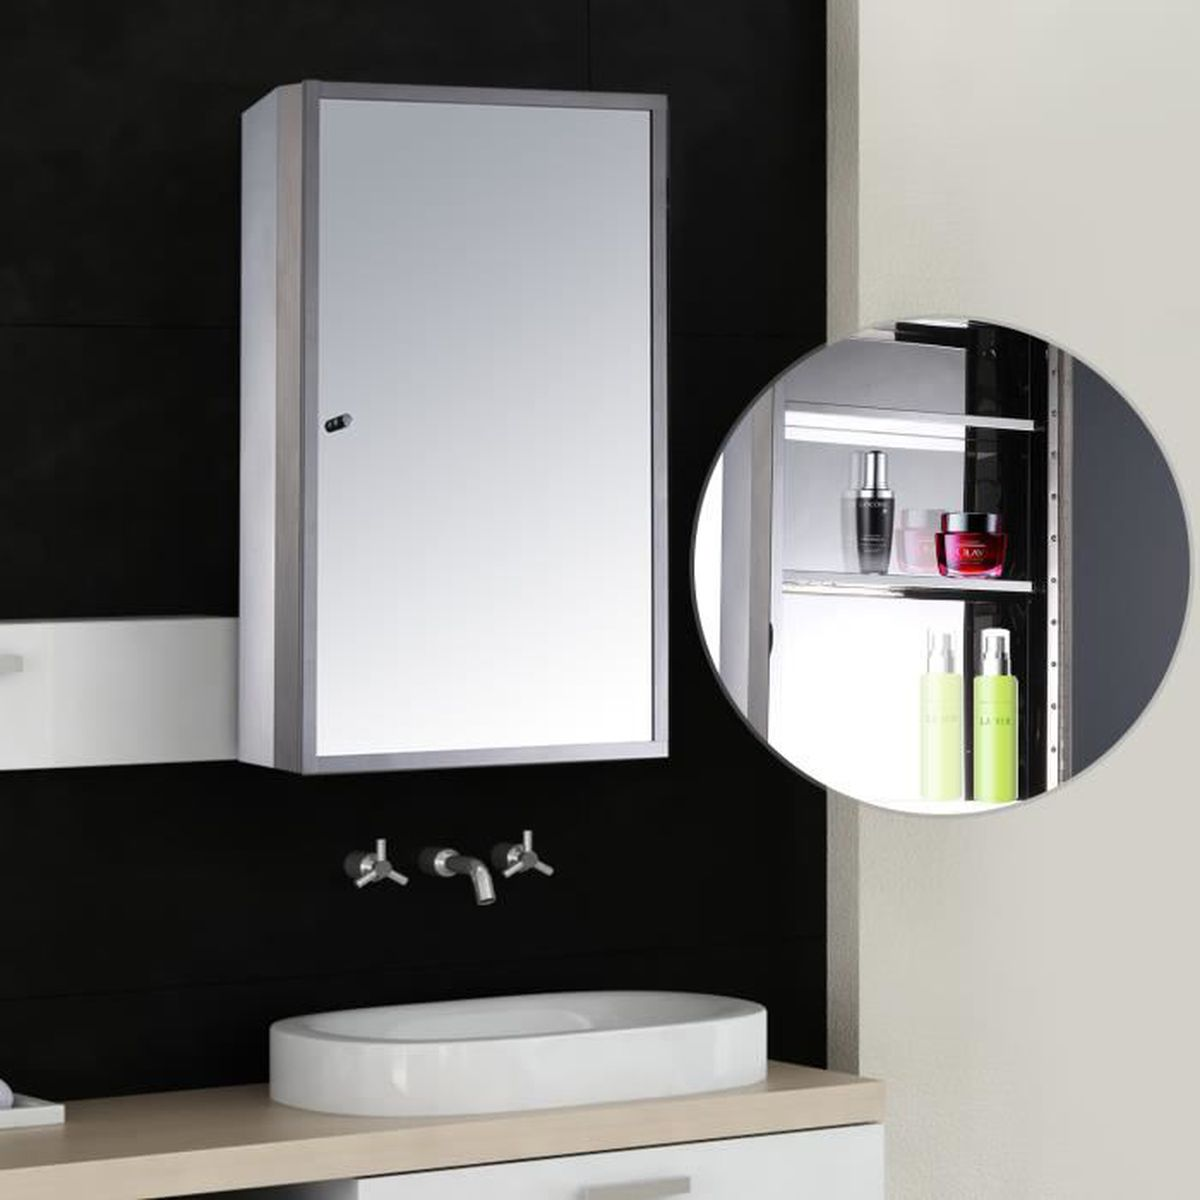 armoire de salle de bain toilette murale avec miroir porte 3 etages acier inox 50l x 13l x 40hcm. Black Bedroom Furniture Sets. Home Design Ideas